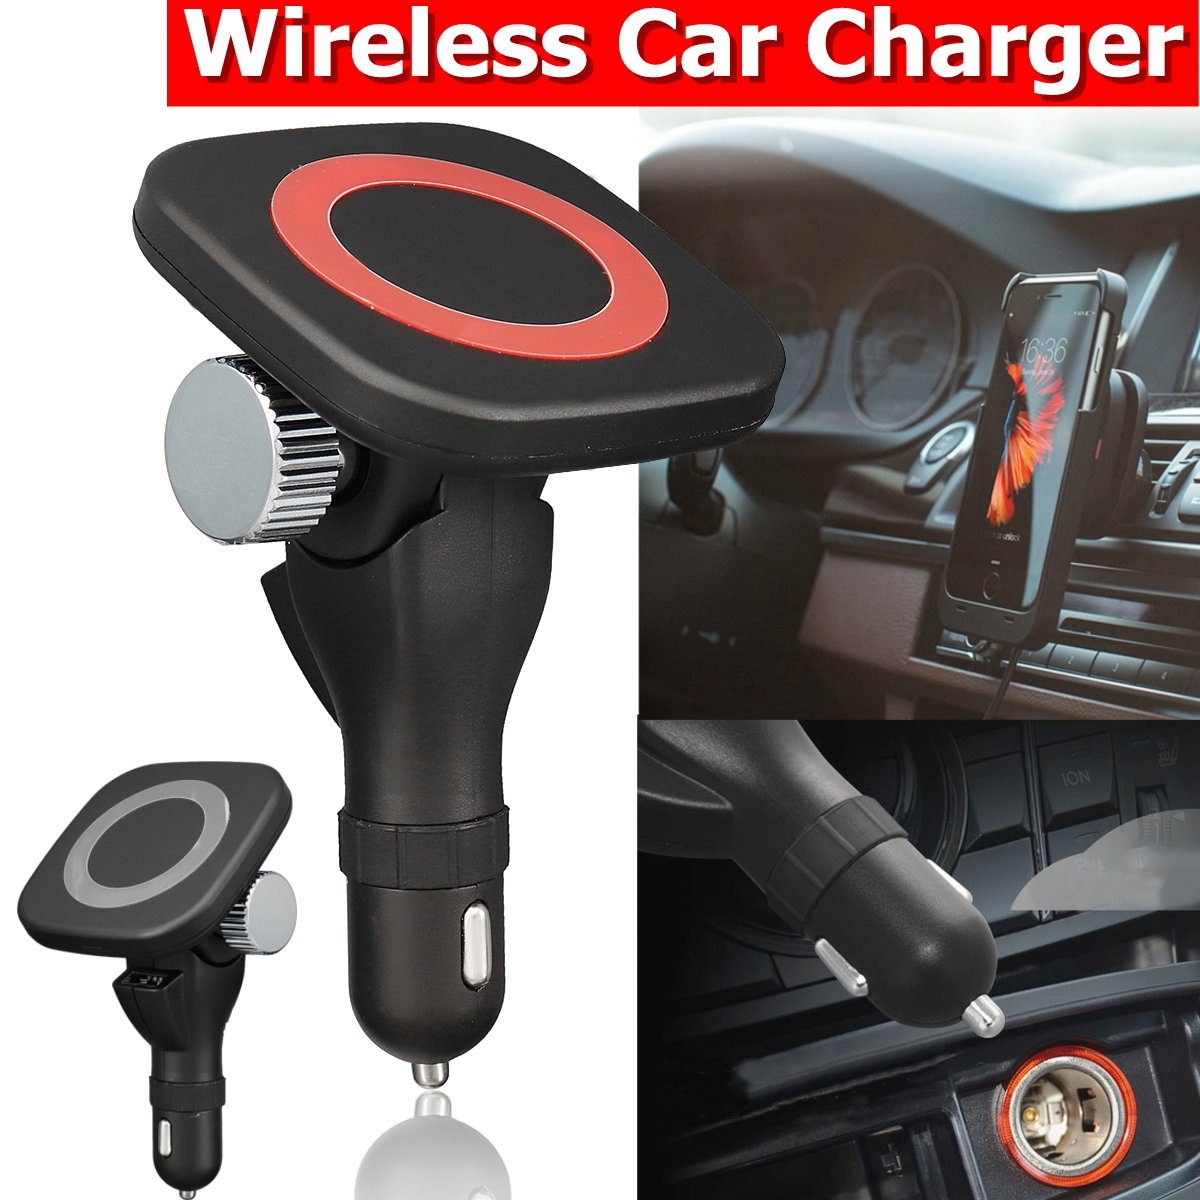 Qi Wireless Car Charger 180 degree rotary QI wireless fast charging vehicle bracket magnetic tape